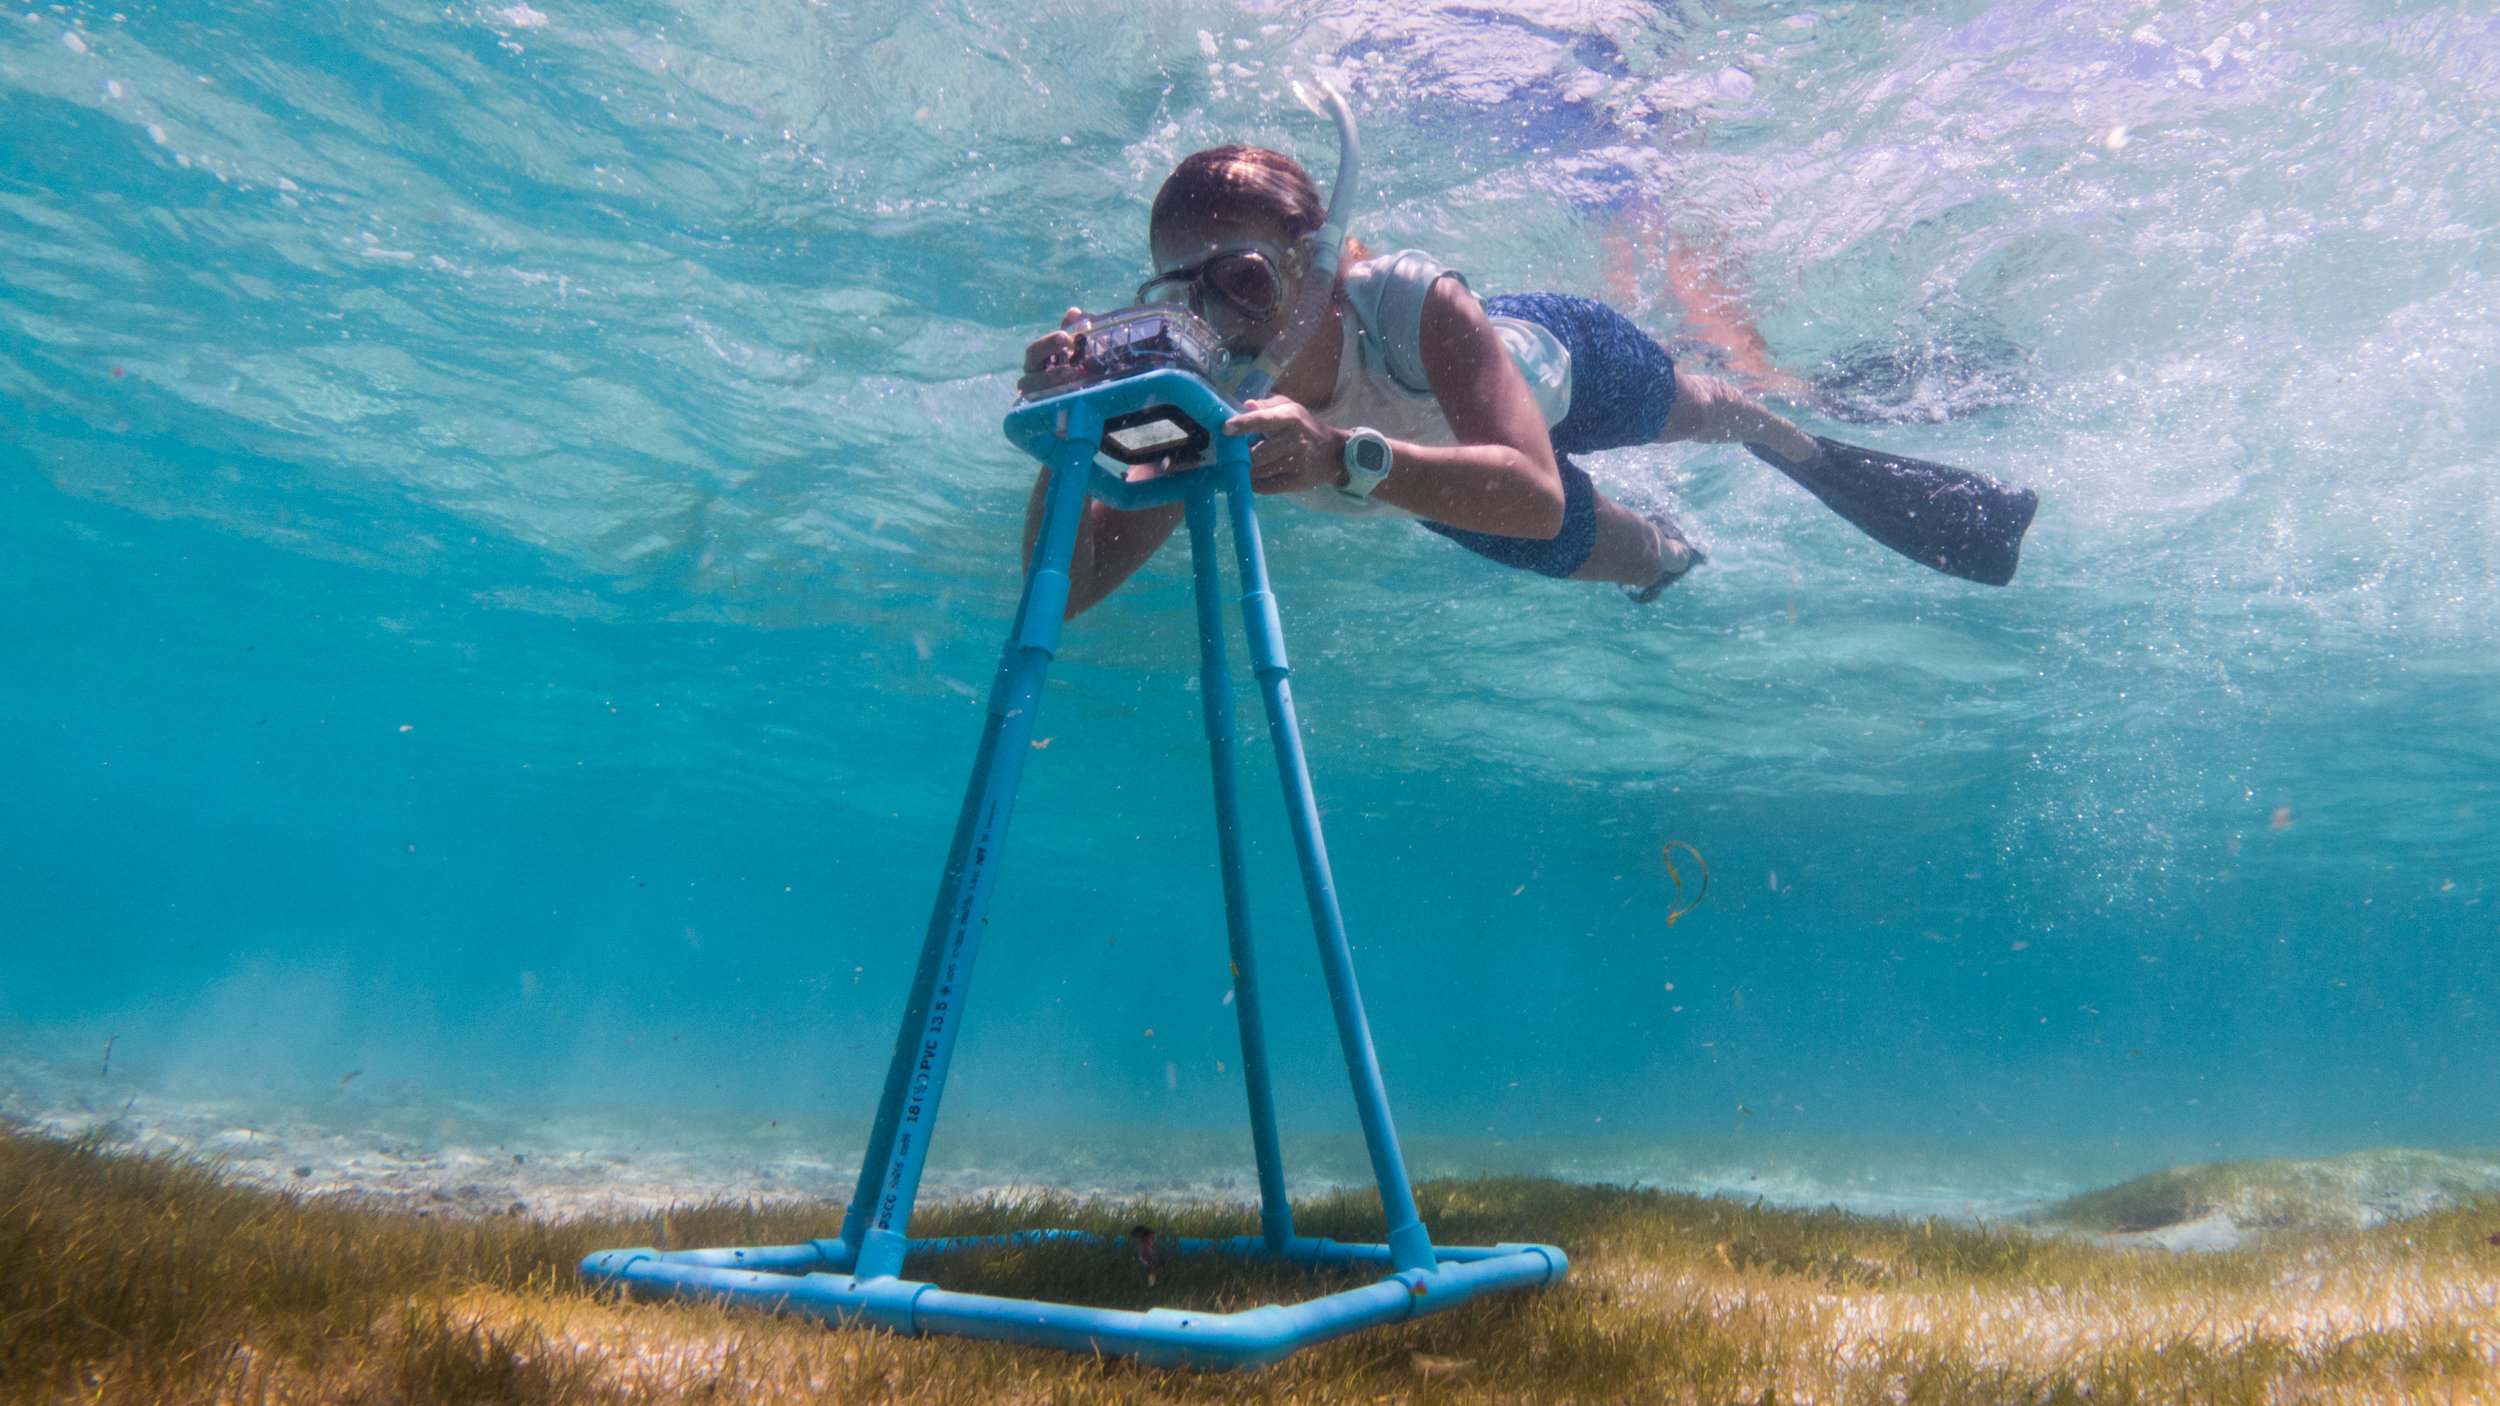 Tash's work combines research, communications and outreach. Here she's doing a survey on the seagrass meadows as part of #ProtectMaldivesSeagrass campaign. Photo: Andrew Ball